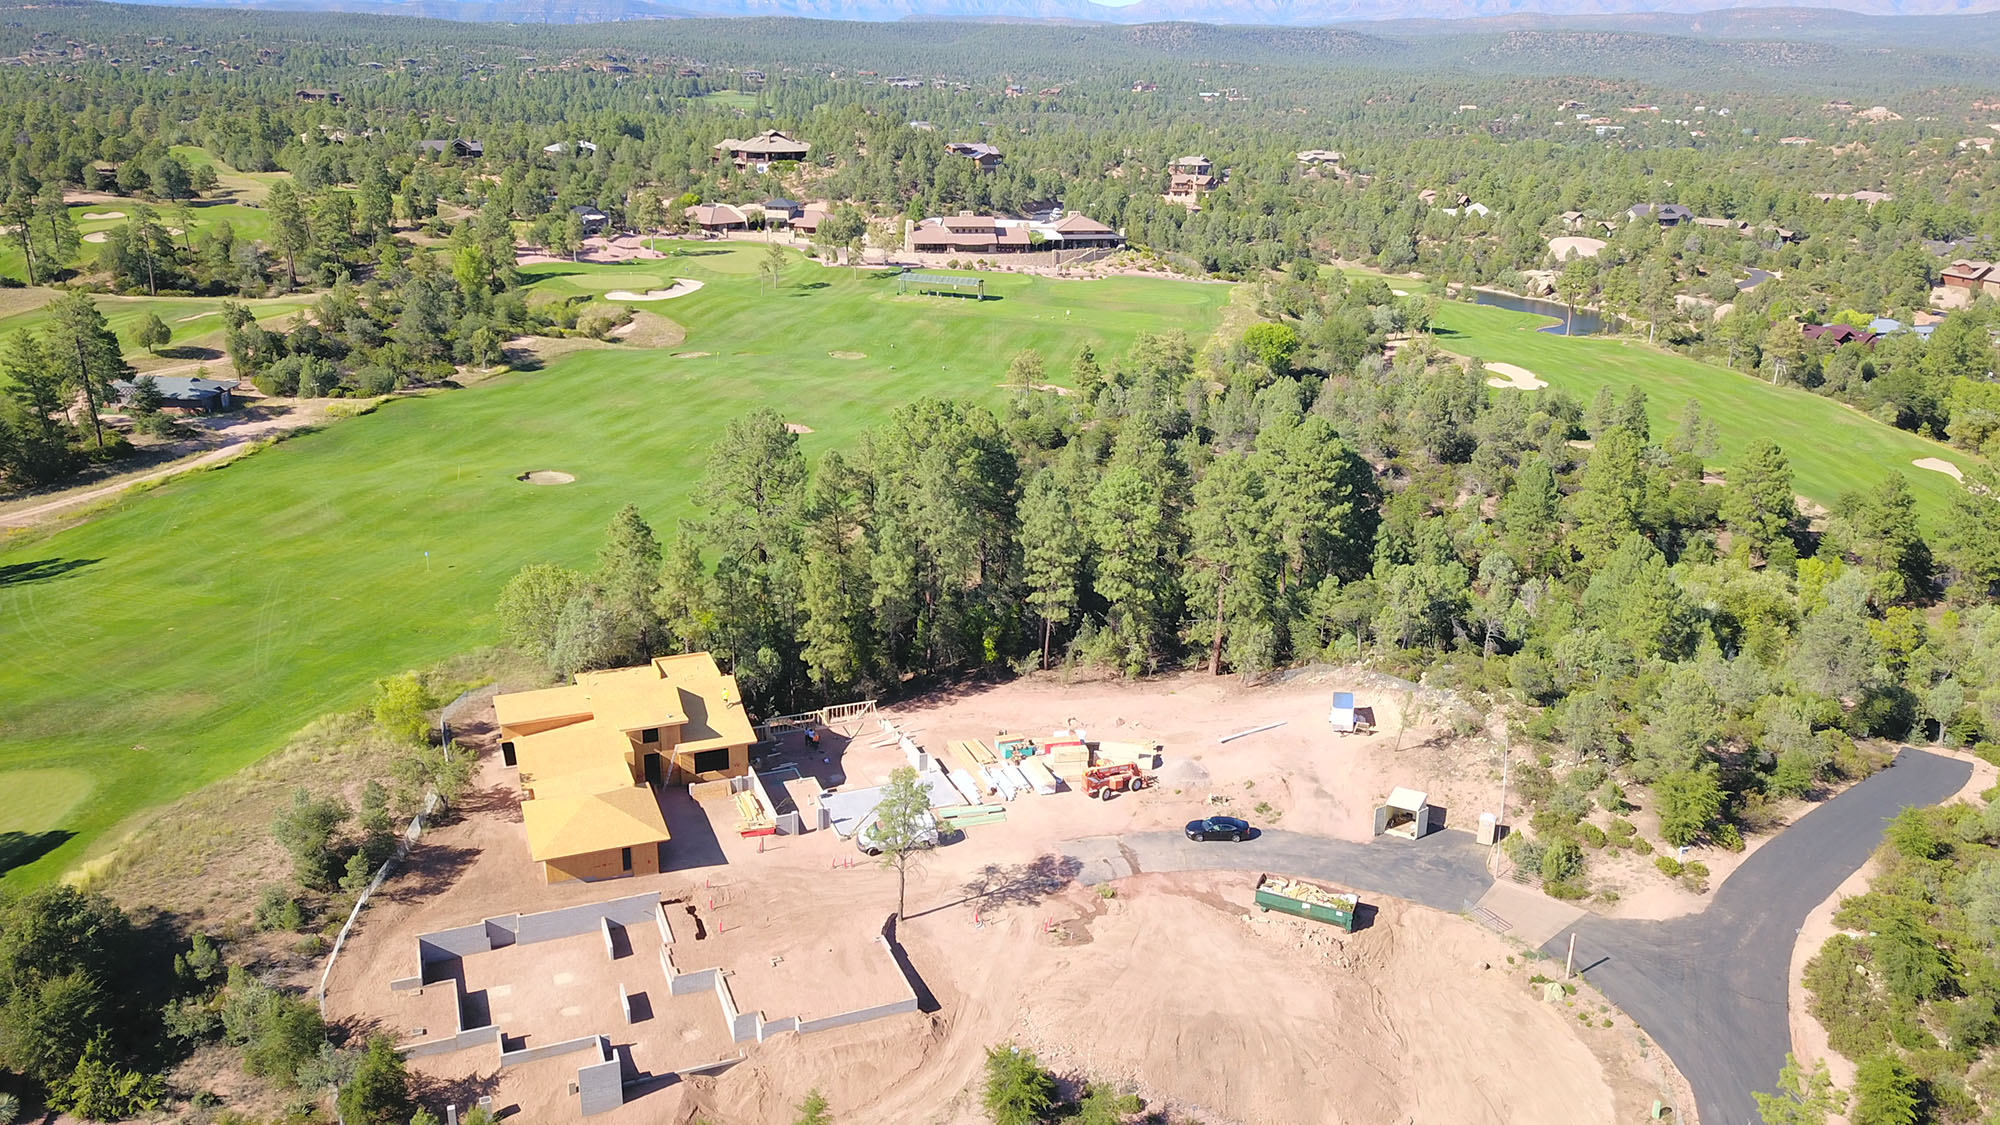 an aerial view of a golf course